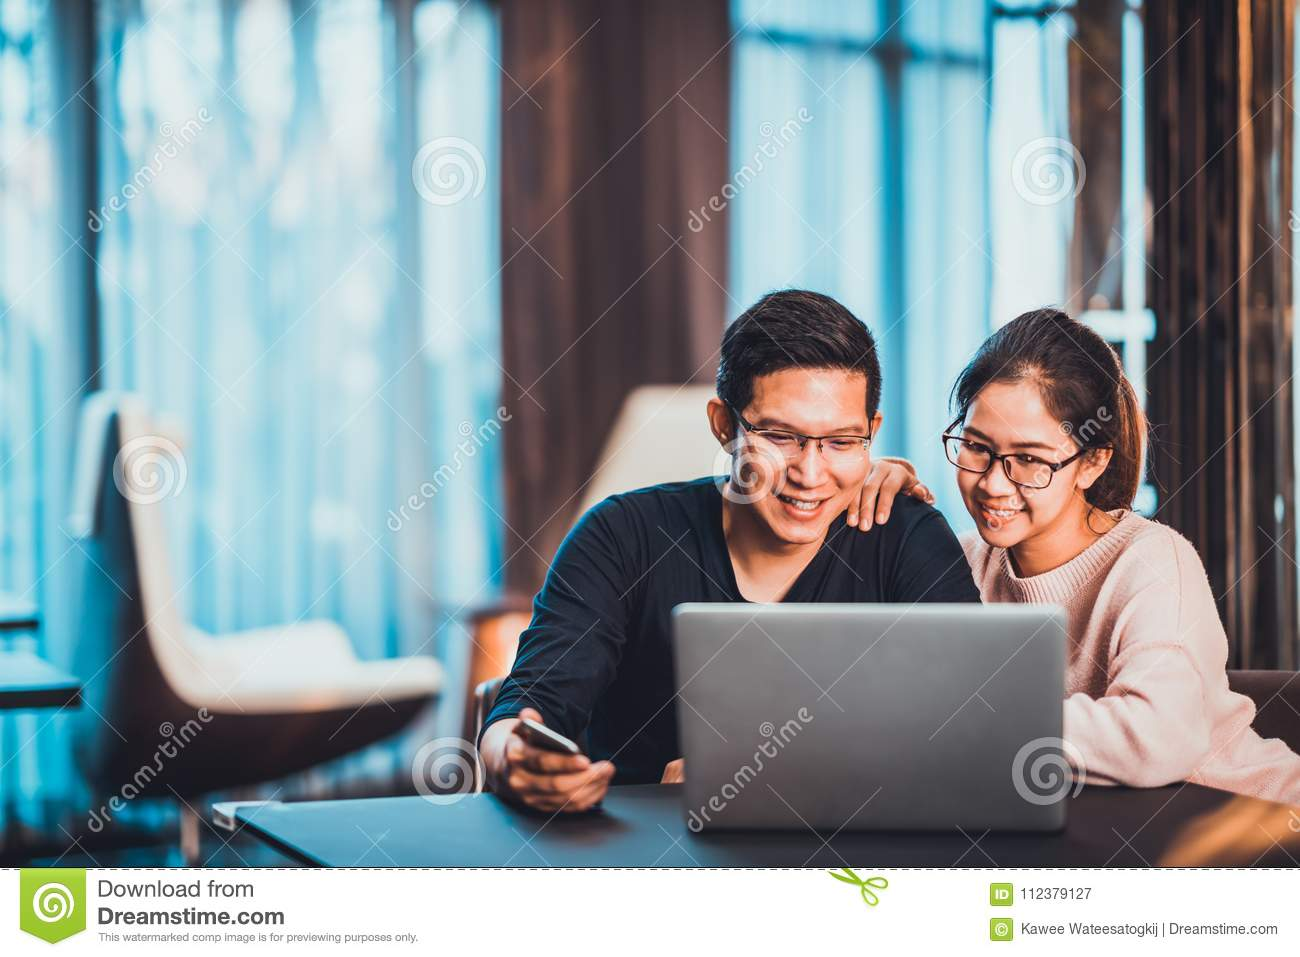 Young Asian married couple working together using laptop at home or modern office with copy space. Startup family business concept